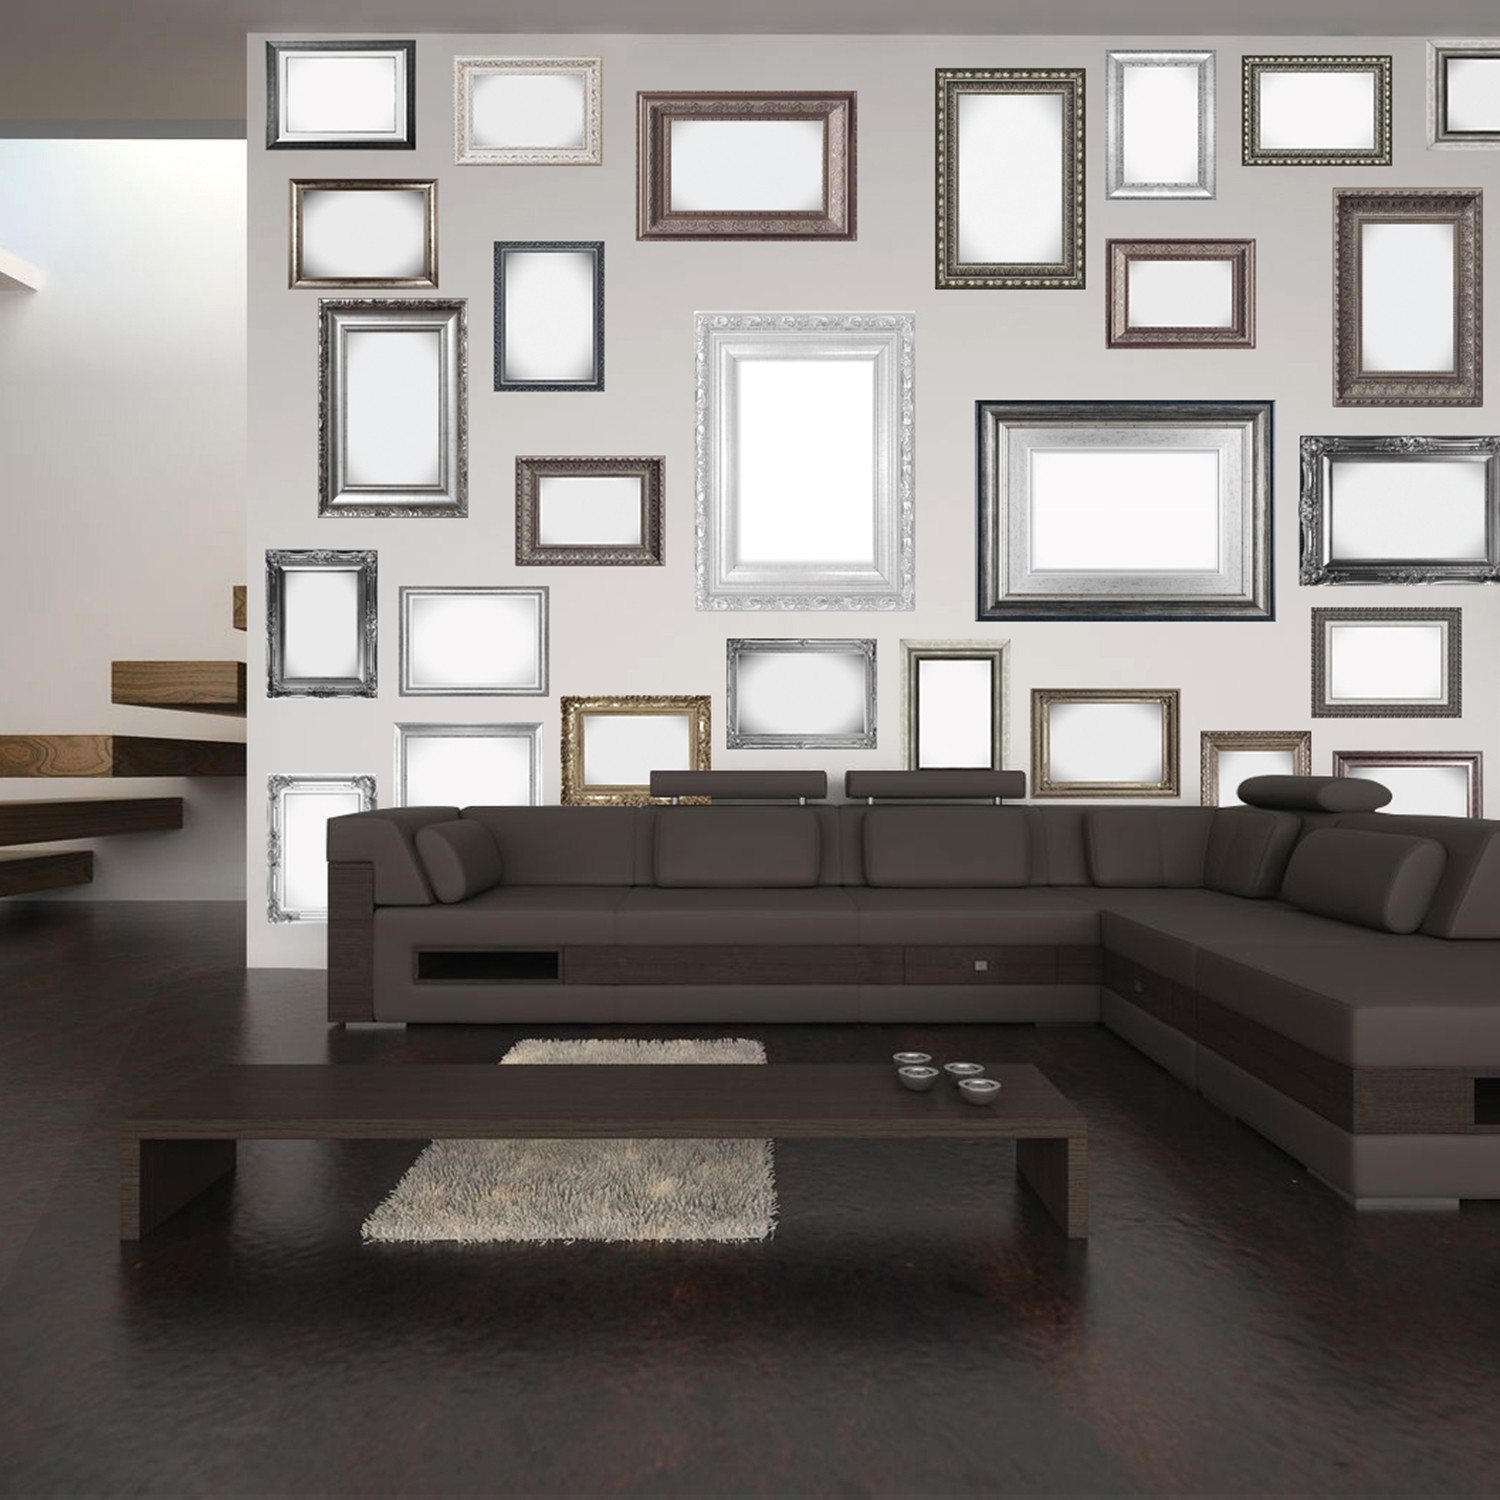 Creative collage frames 1 wall murals touch of modern creative collage frames amipublicfo Choice Image